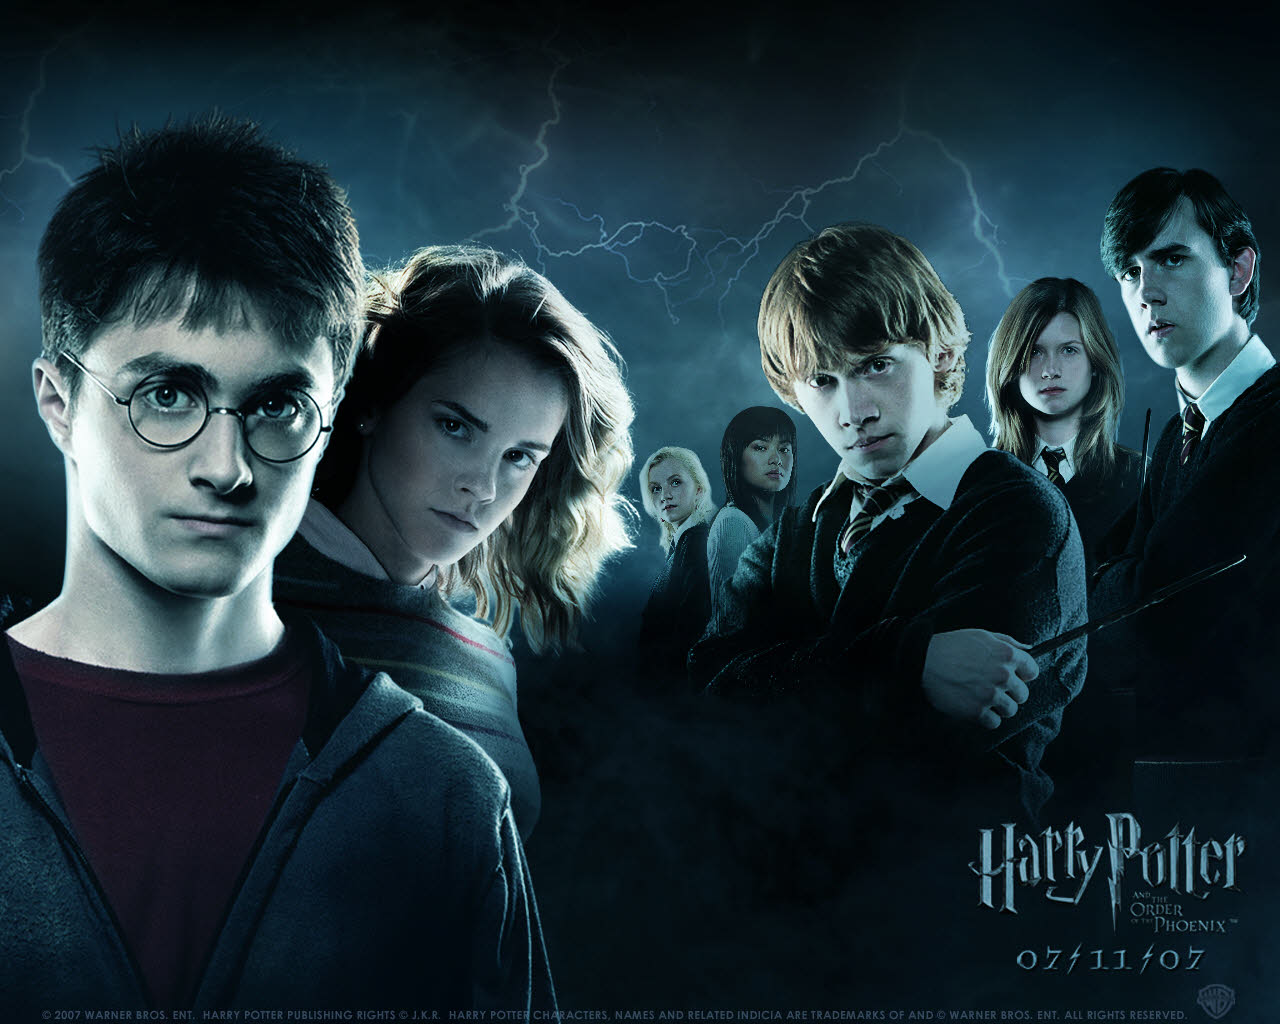 http://3.bp.blogspot.com/-WyLbsXFbaEQ/Tlz5QHycQcI/AAAAAAAAADo/9Ol6CFdq9Ws/s1600/Harry-Potter-And-The-Deathly-Hallows-Part-2-Wallpapers.jpg#Harry%20potter%20deathly%20hallows%20part%20two%201280x1024